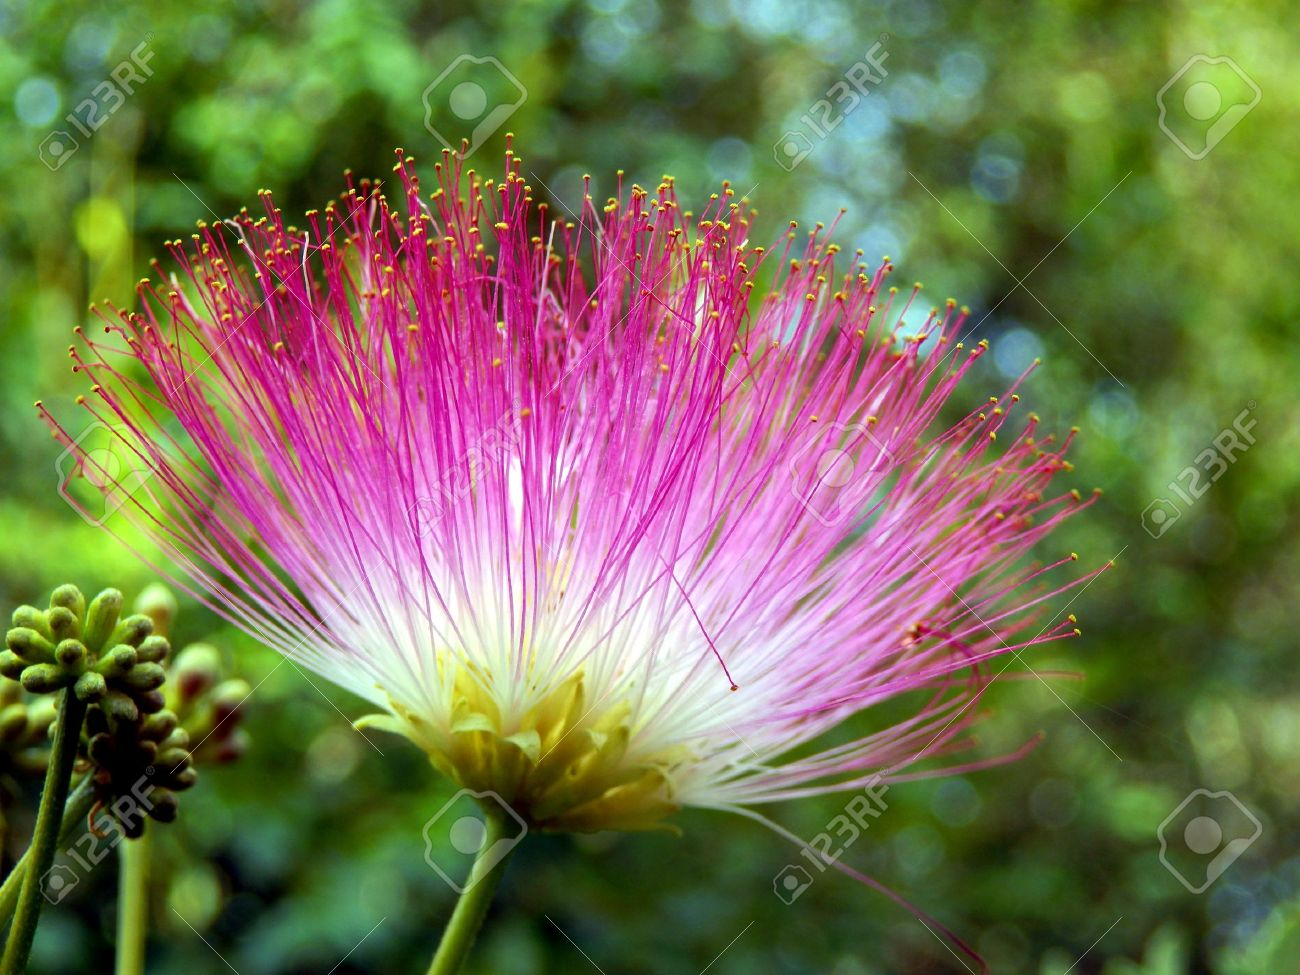 Flower of the persian silk tree or mimosa albizia julibrissin stock flower of the persian silk tree or mimosa albizia julibrissin stock photo 16945484 mightylinksfo